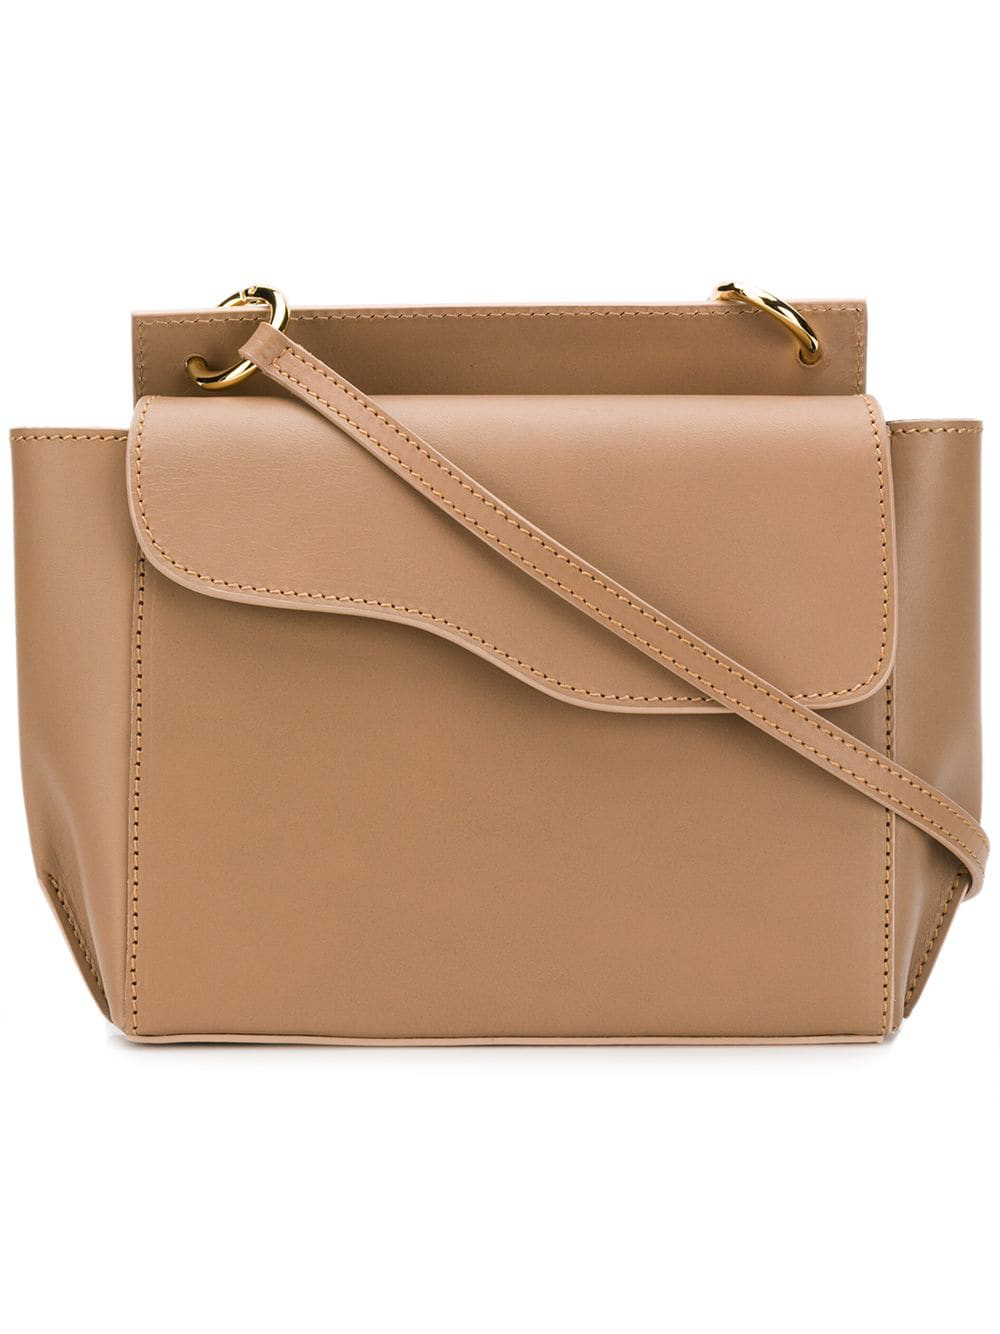 Atp Atelier Aulla Cross-Body Bag - Neutrals